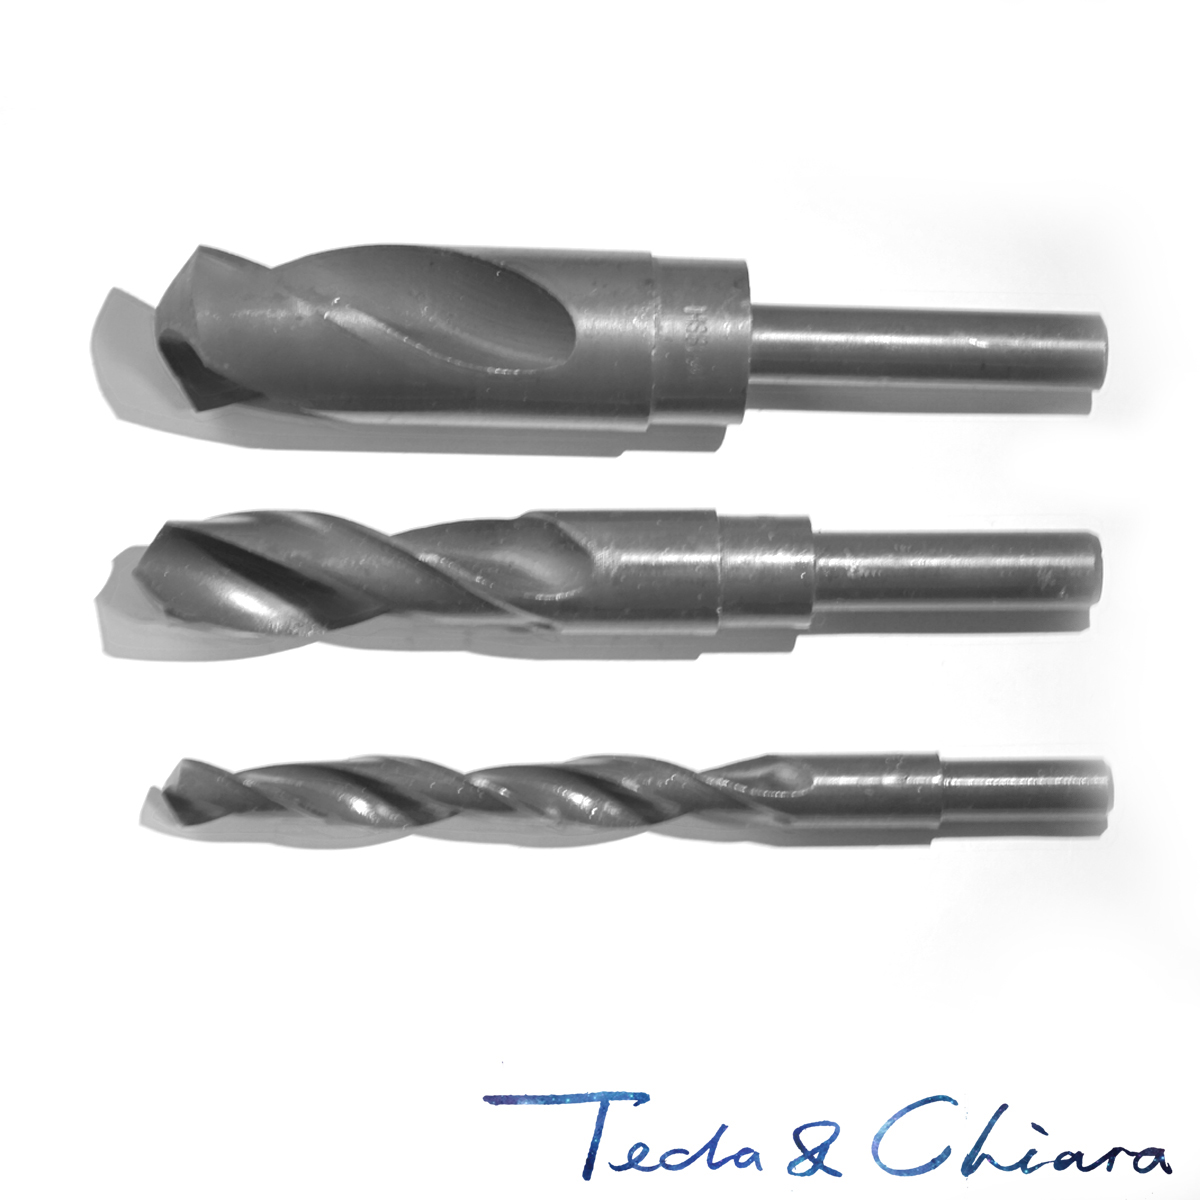 13.6mm 13.7mm 13.8mm 13.9mm 14mm HSS Reduced Straight Crank Twist Drill Bit Shank Dia 12.7mm 1/2 Inch 13.6 13.7 13.8 13.9 14